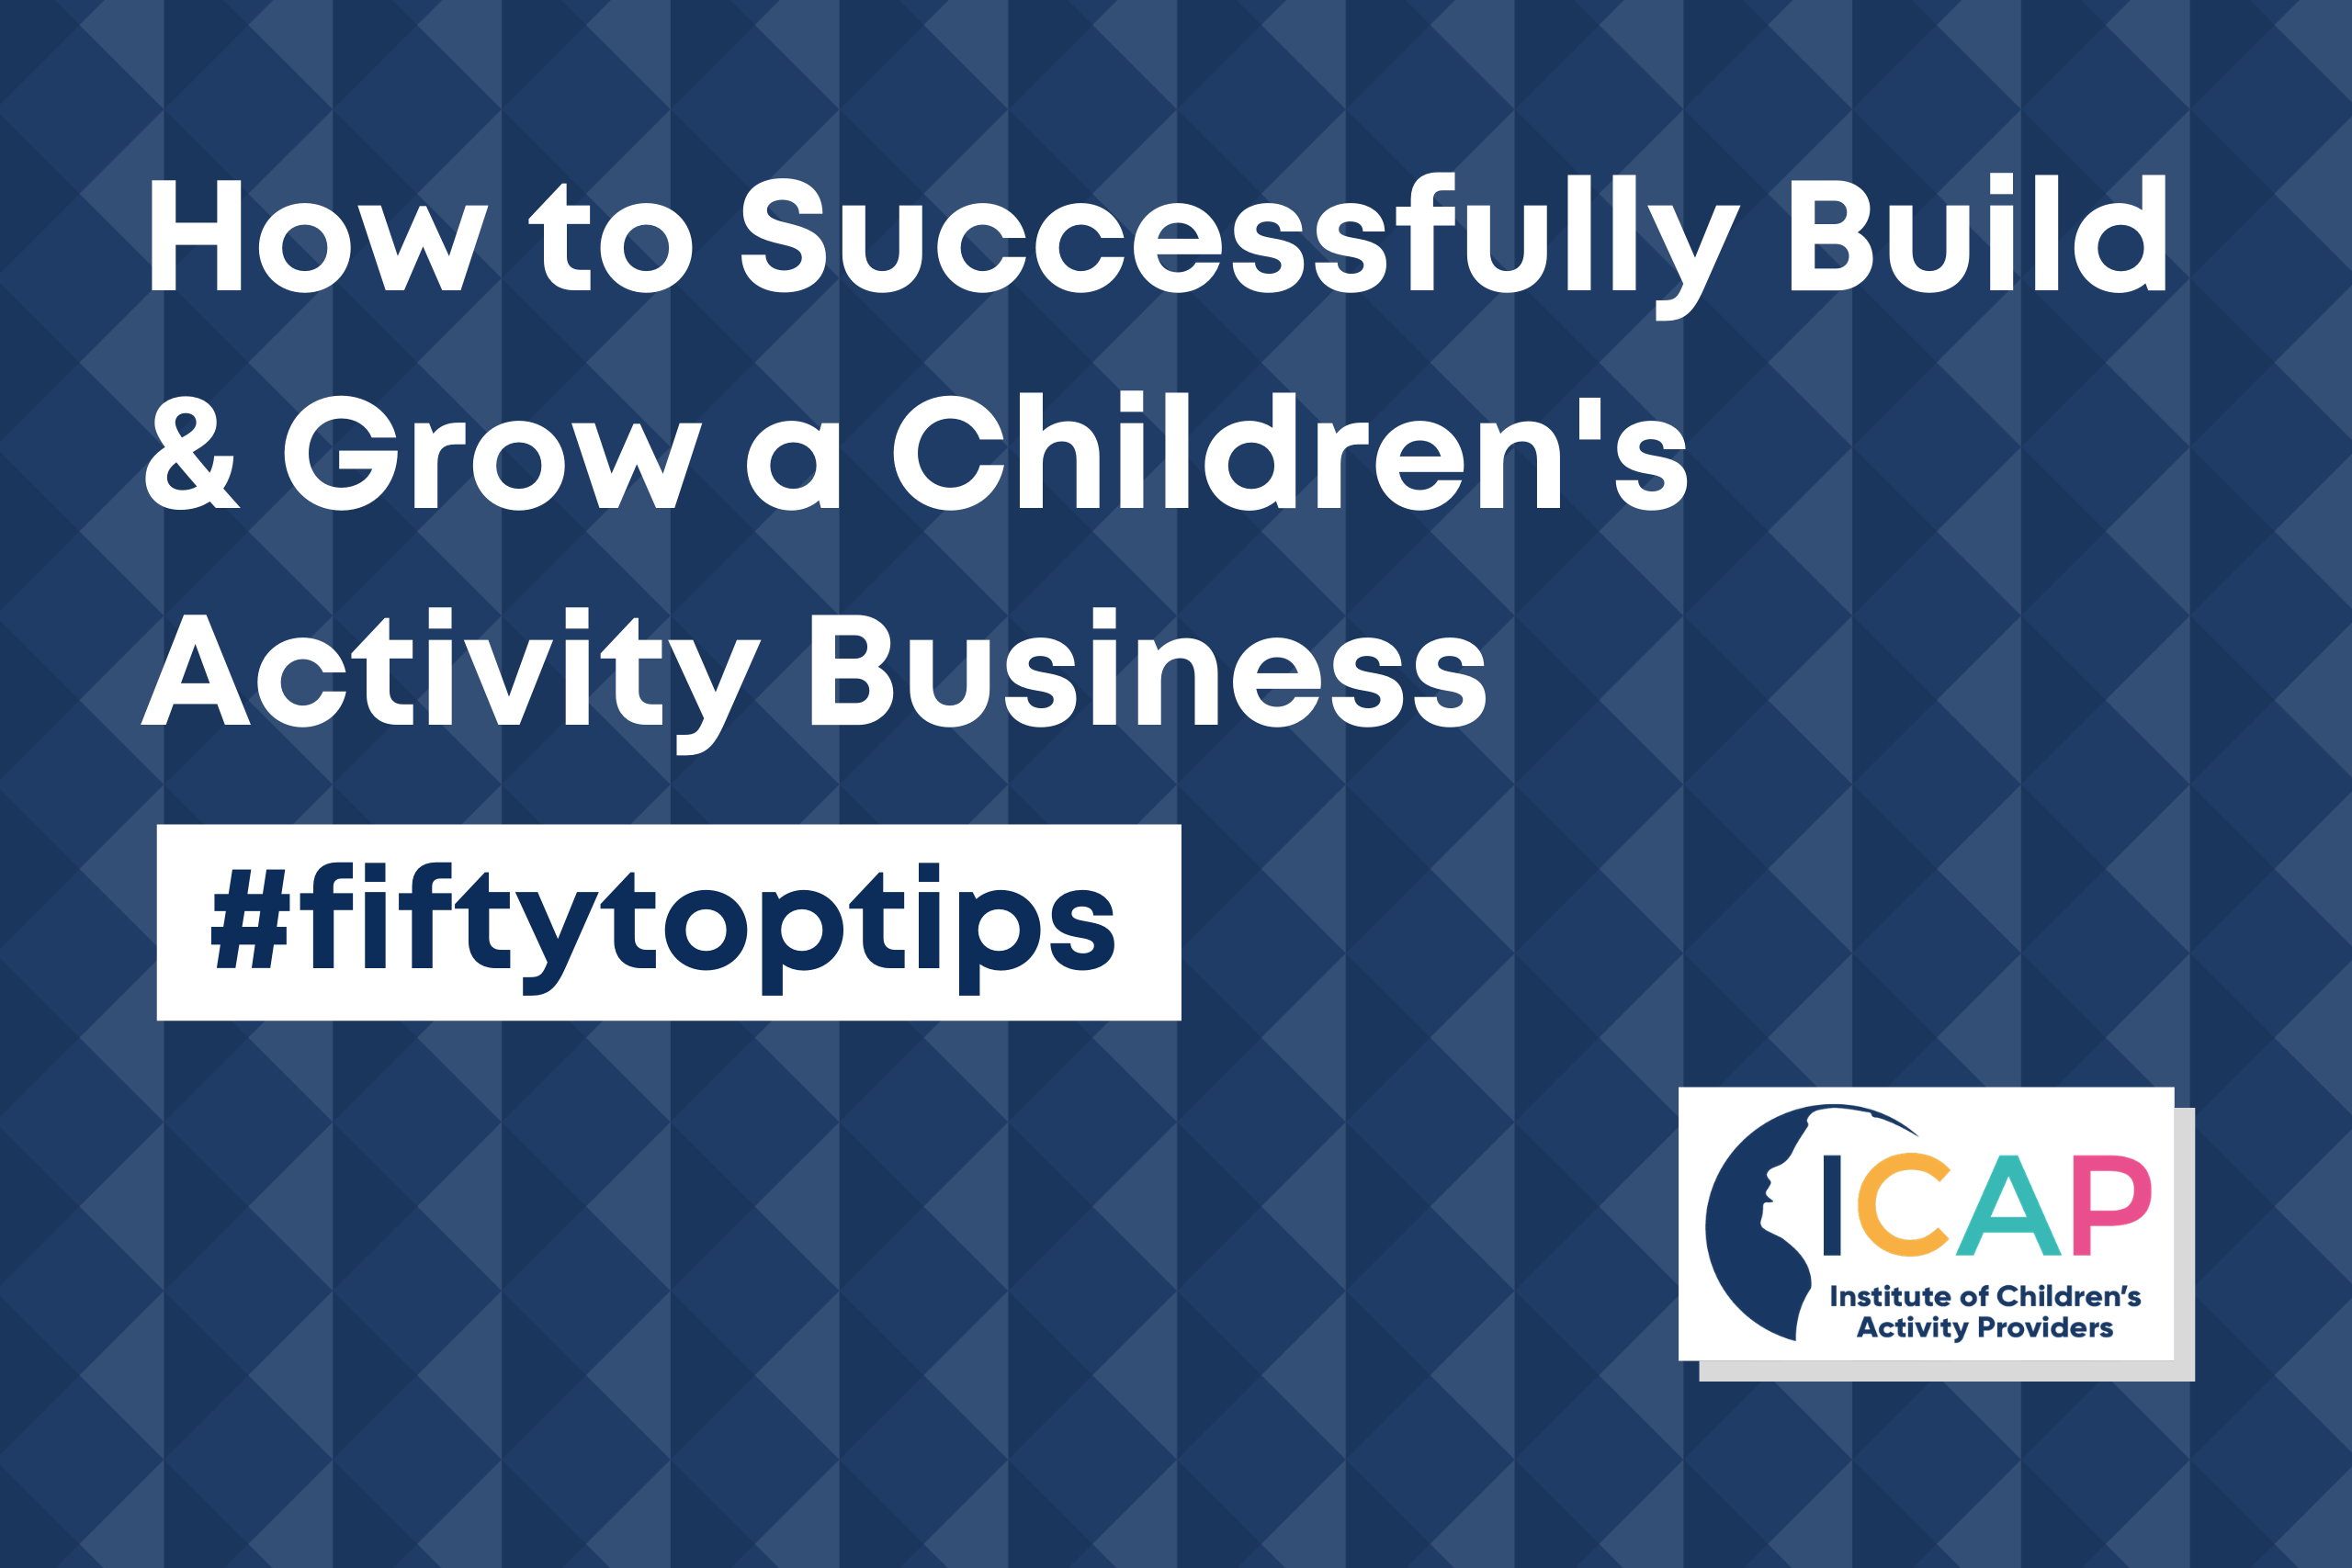 How to Successfully Build & Grow a Children's Activity Business